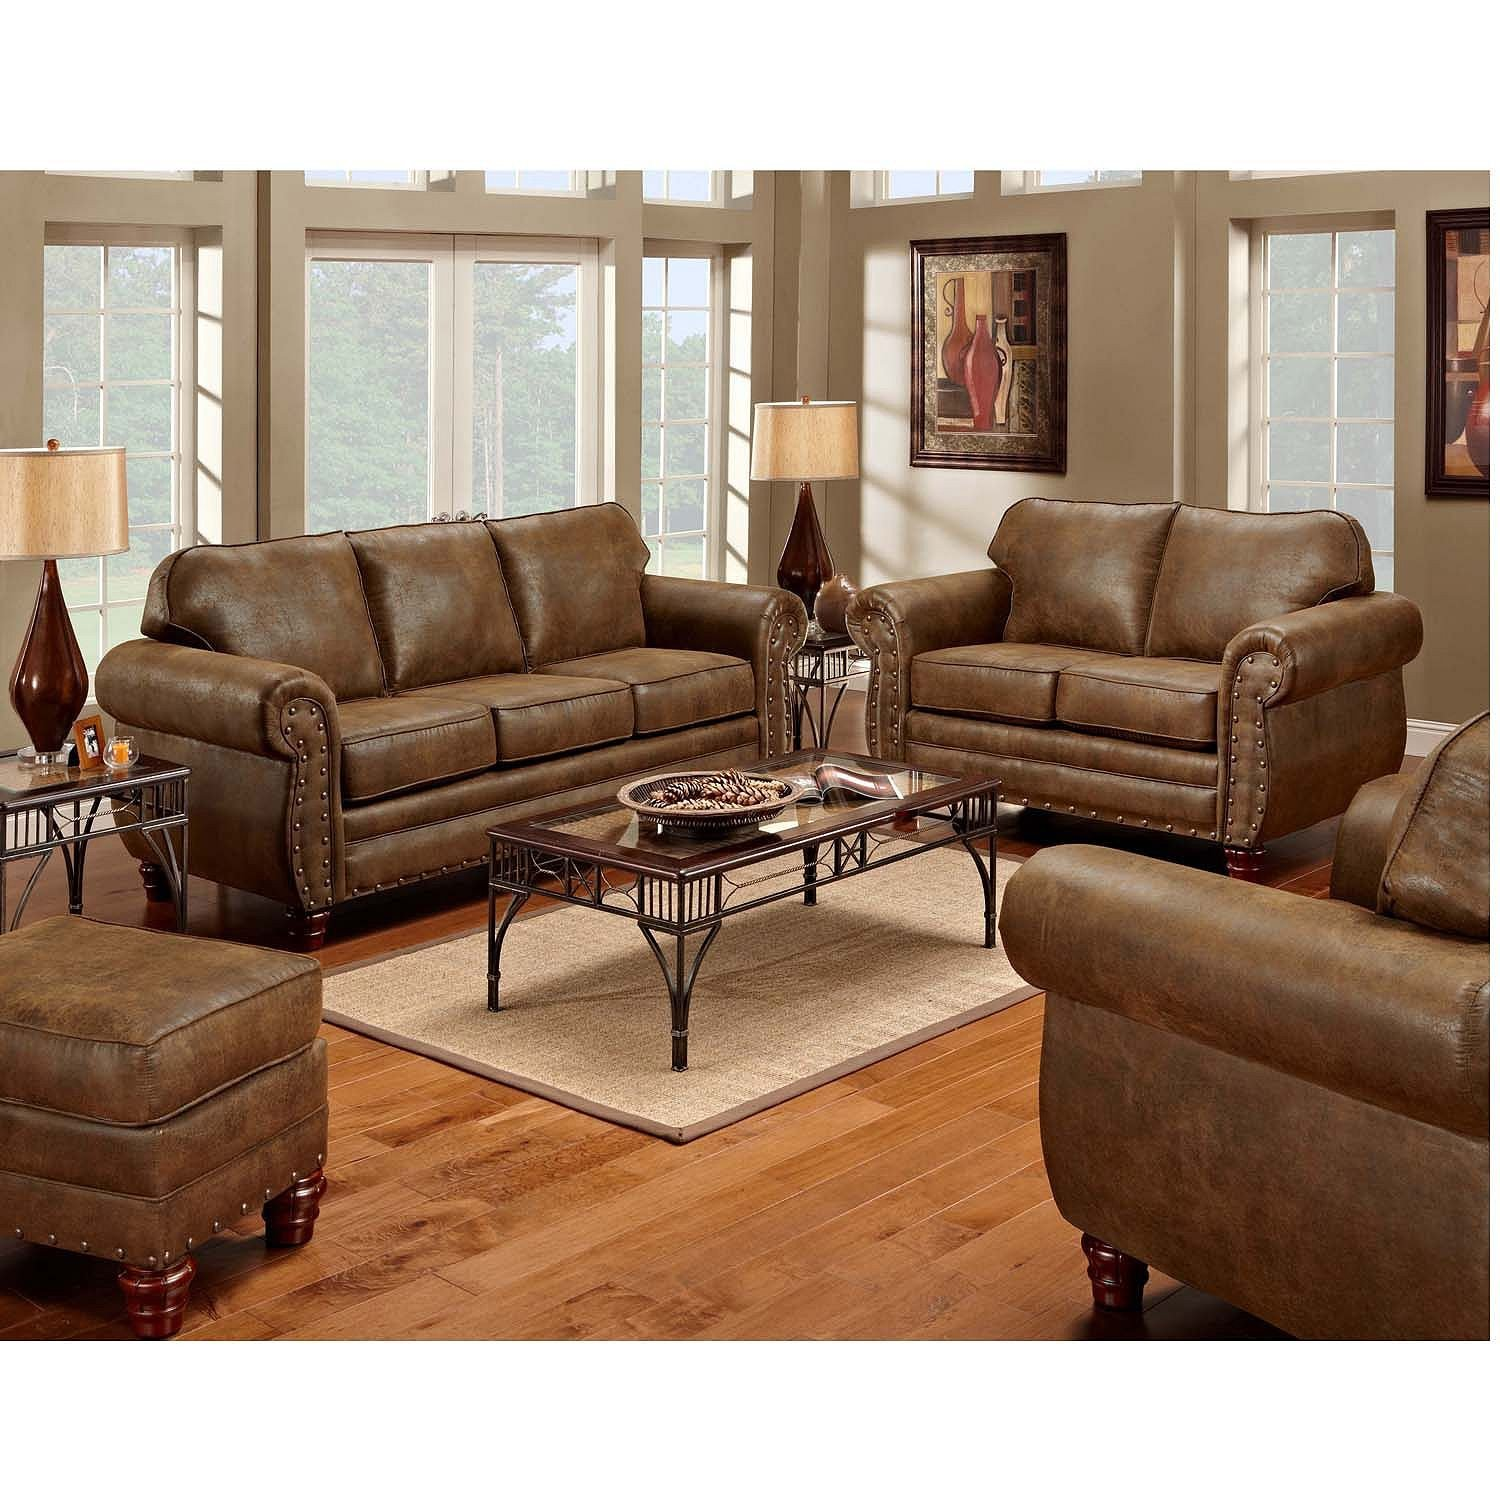 Comfortable Classic Living Room top 4 fortable Chairs for Living Room